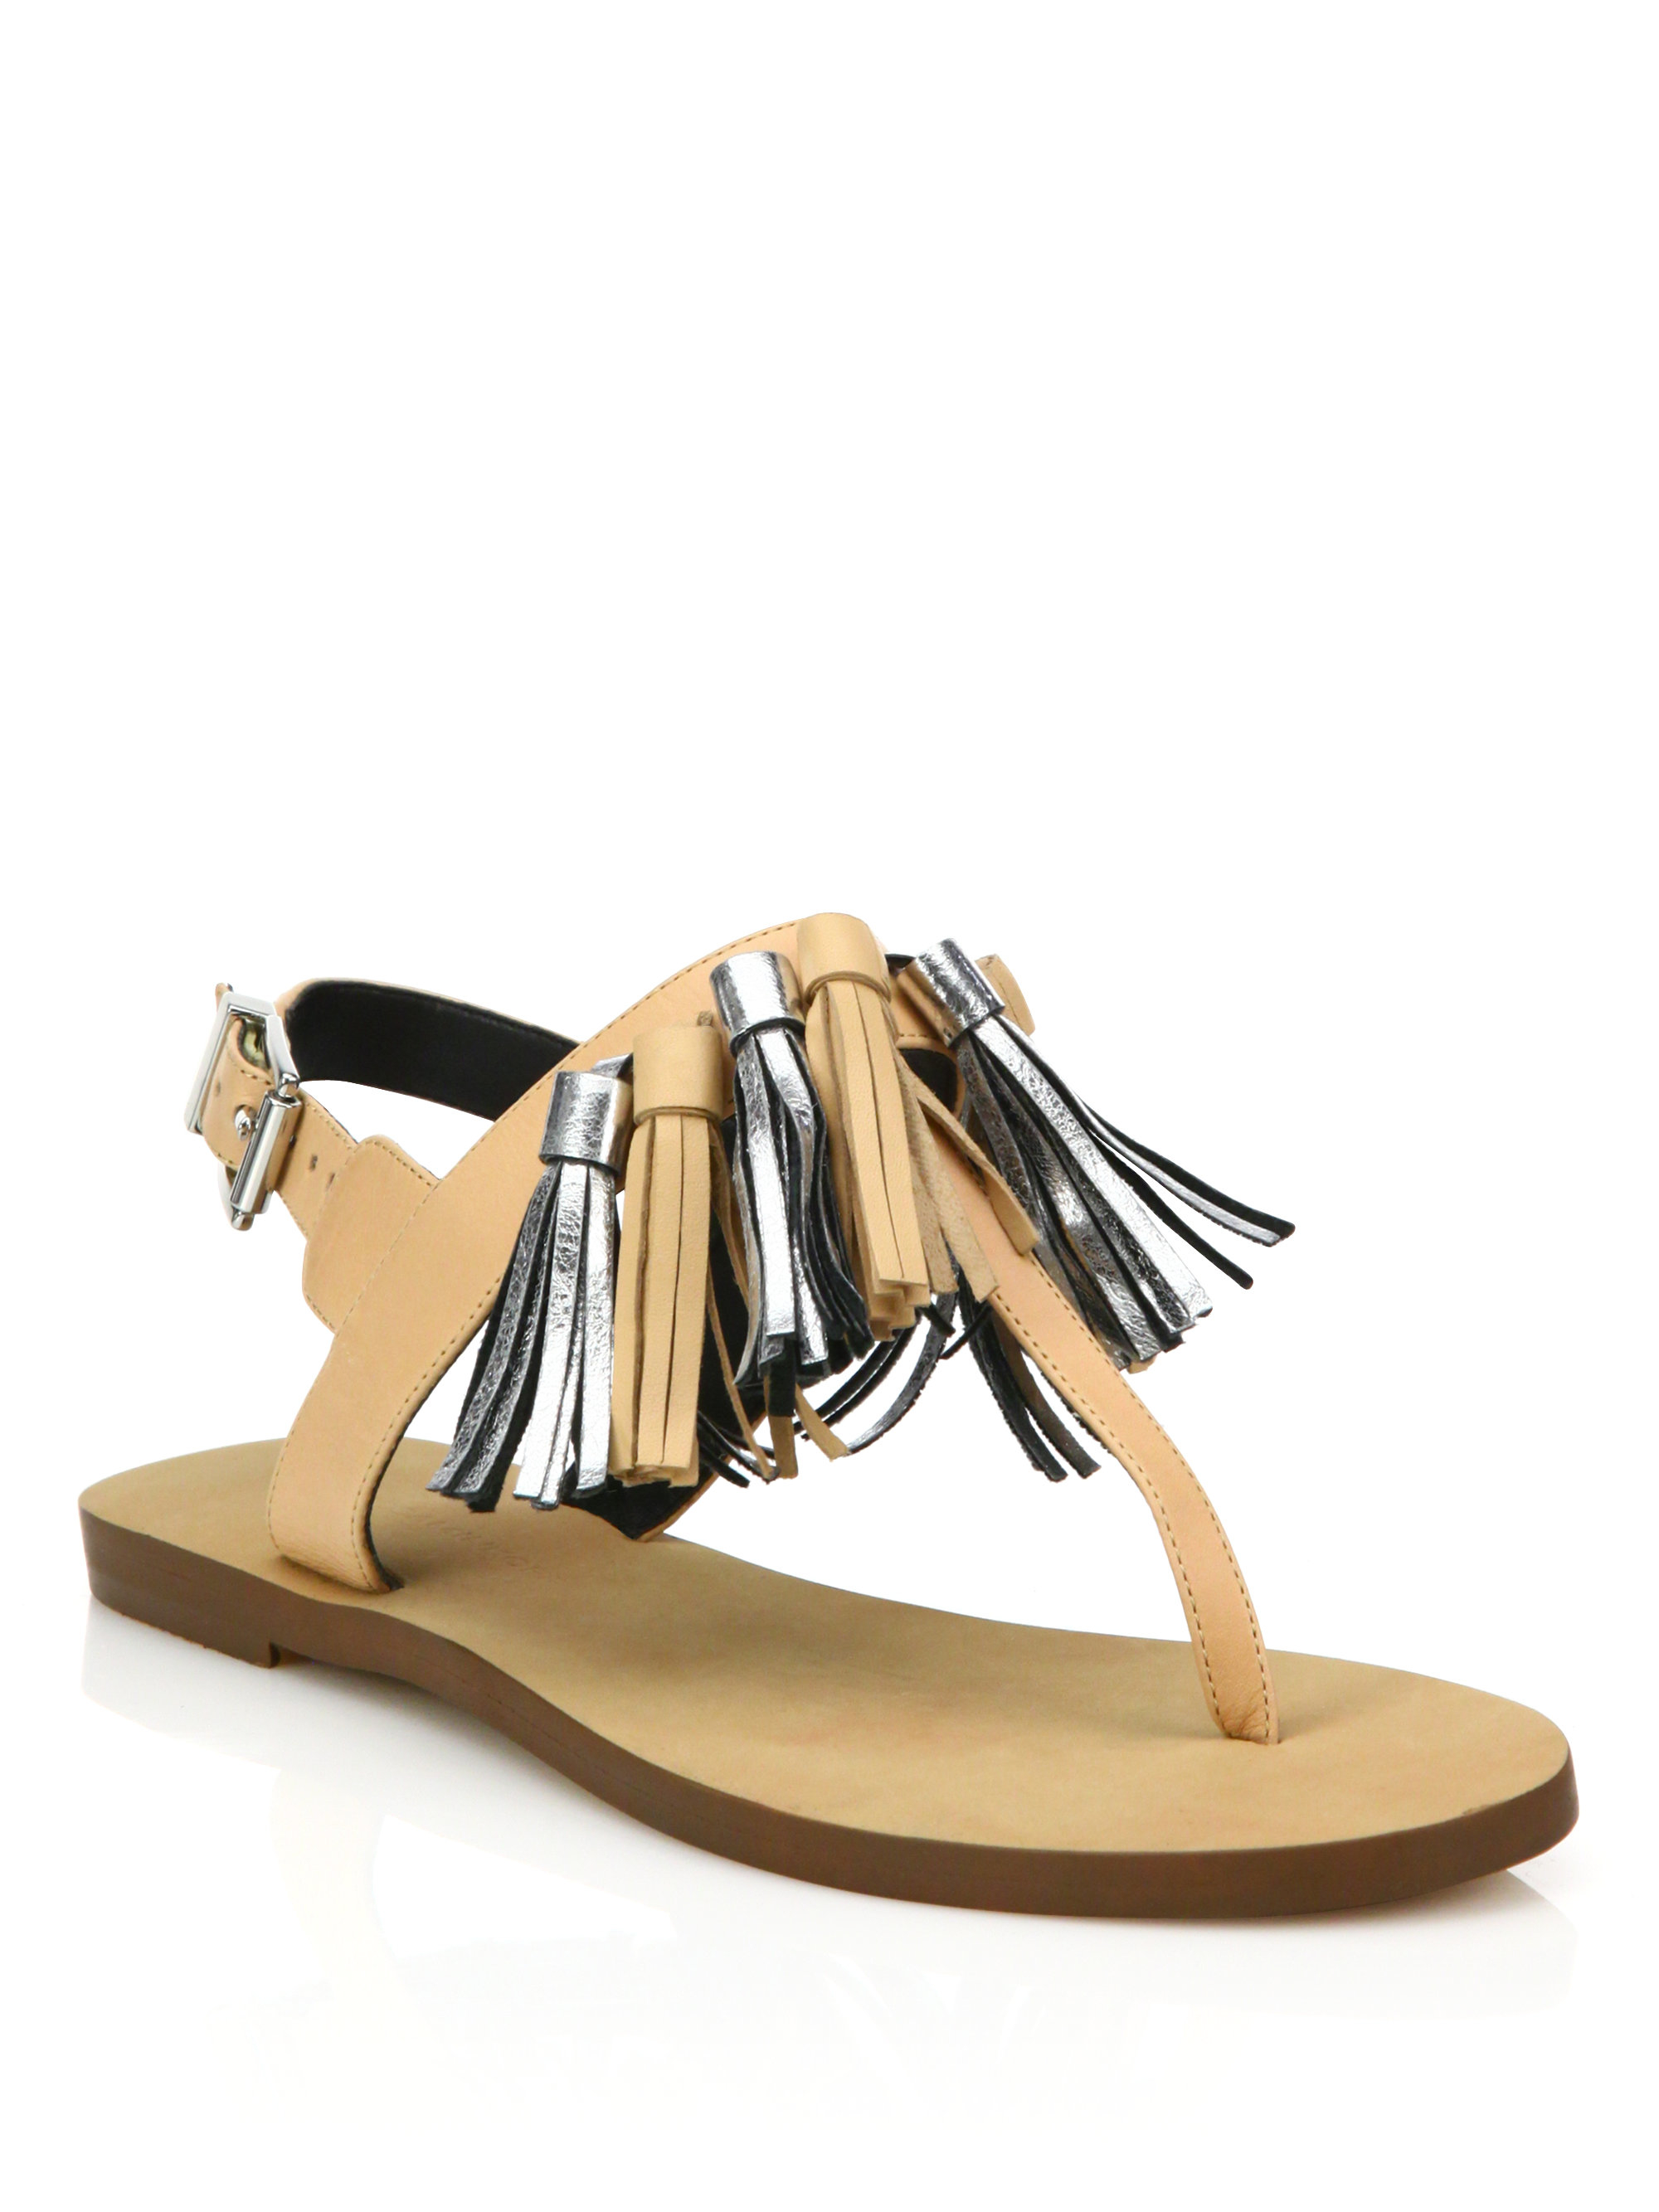 Rebecca Minkoff Leather Fringe Sandals free shipping pictures 1FwdG